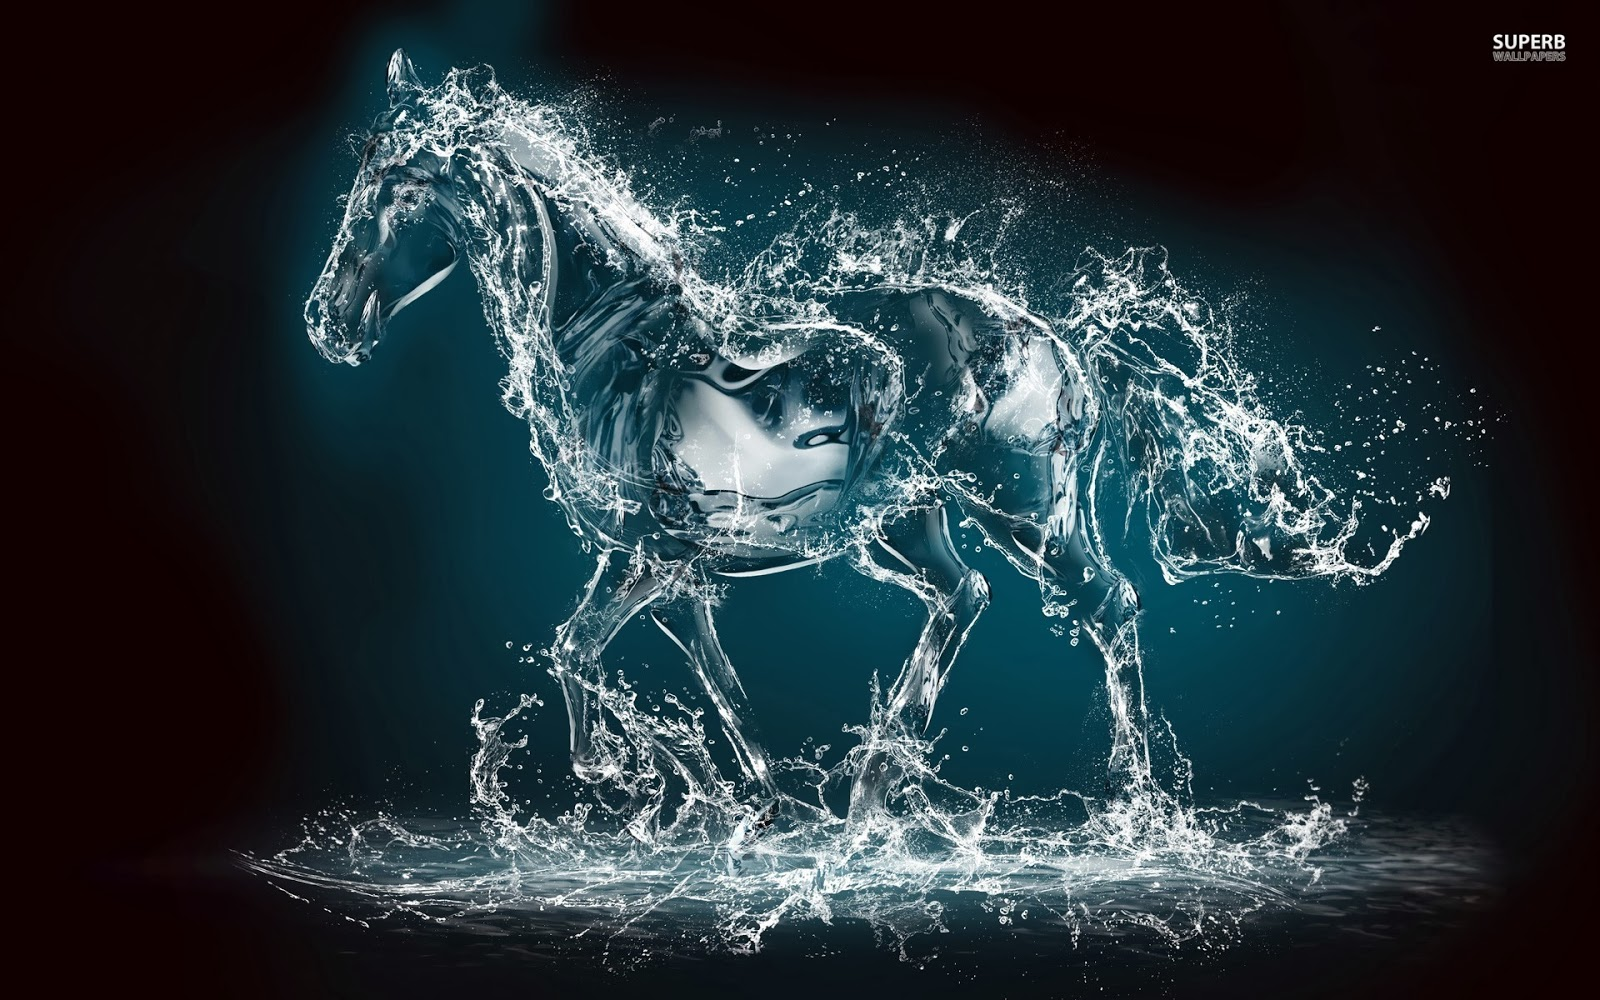 Water Horse Wallpaper - HD Wallpapers Blog